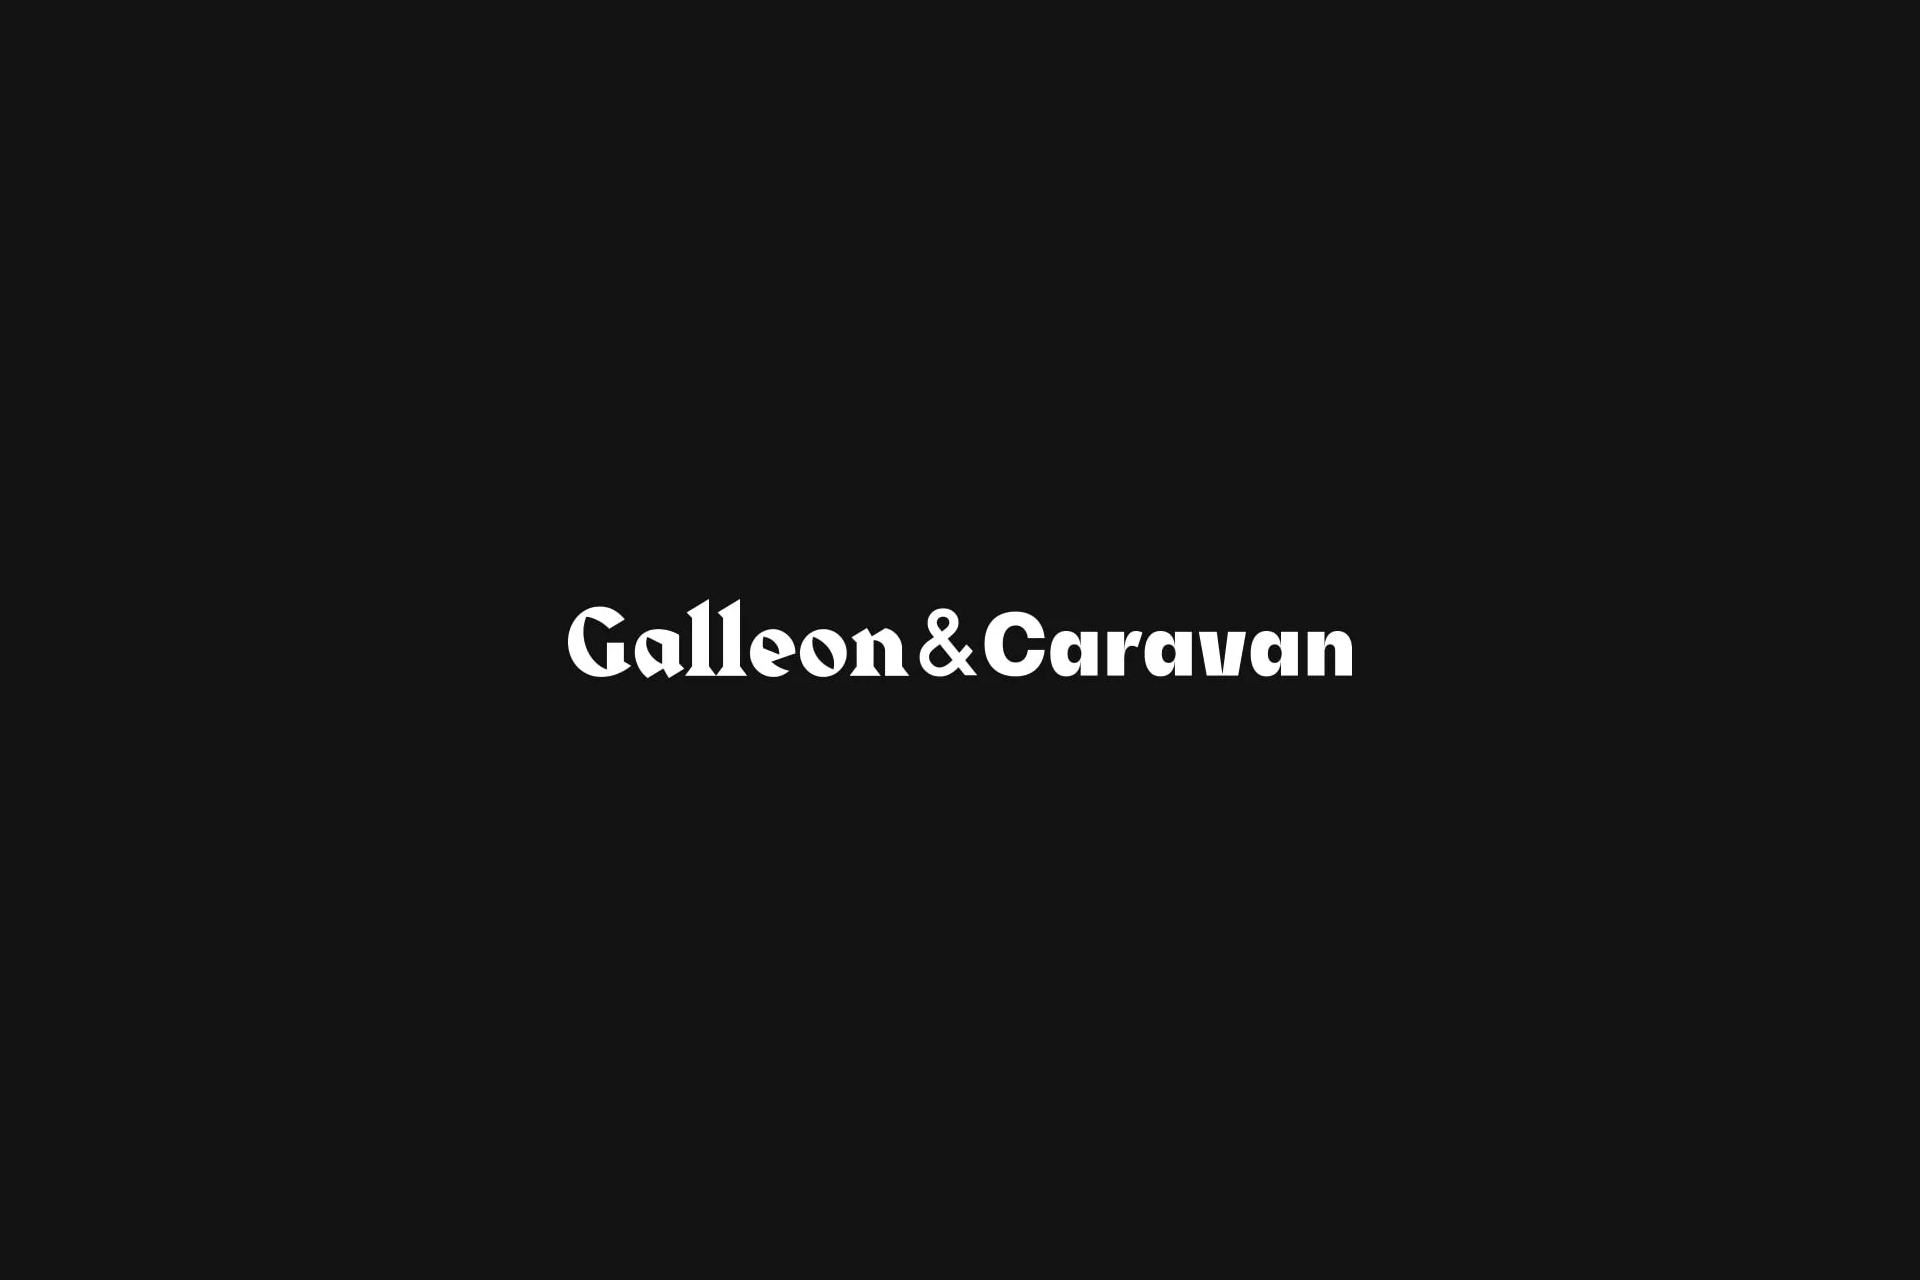 galleon caravan